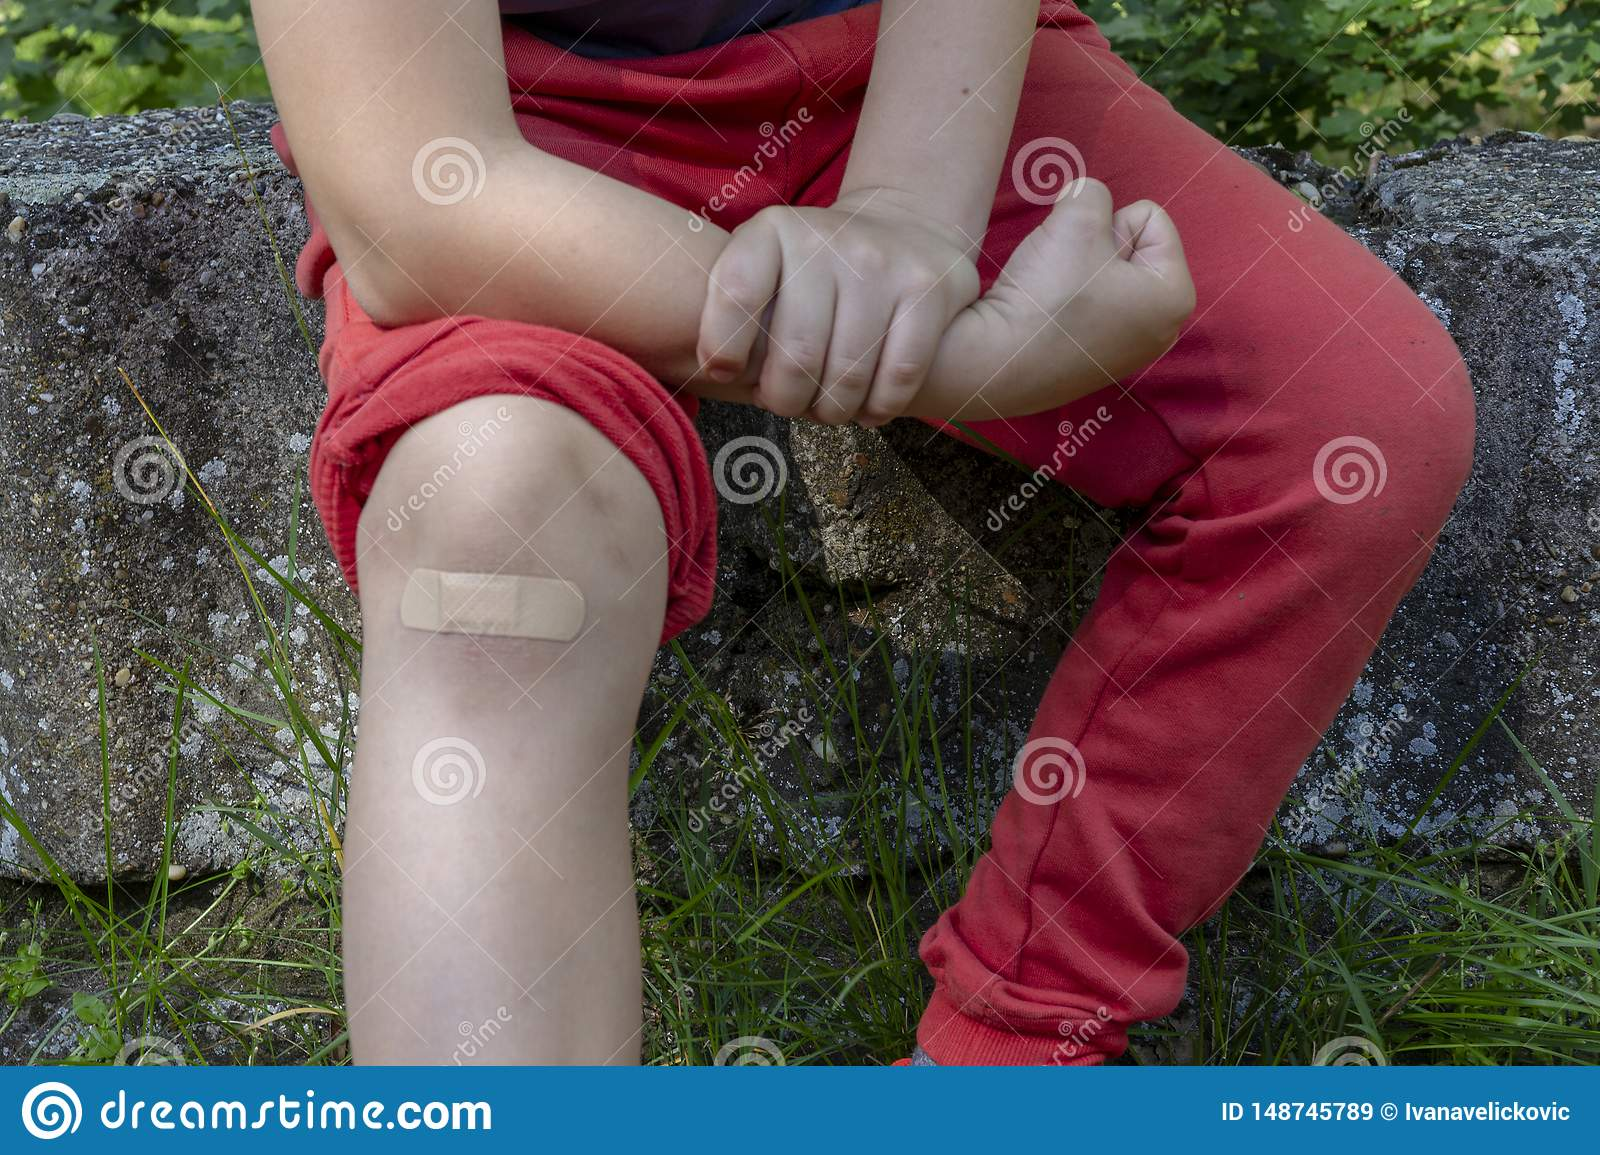 Boy in pain with bandage on his knee